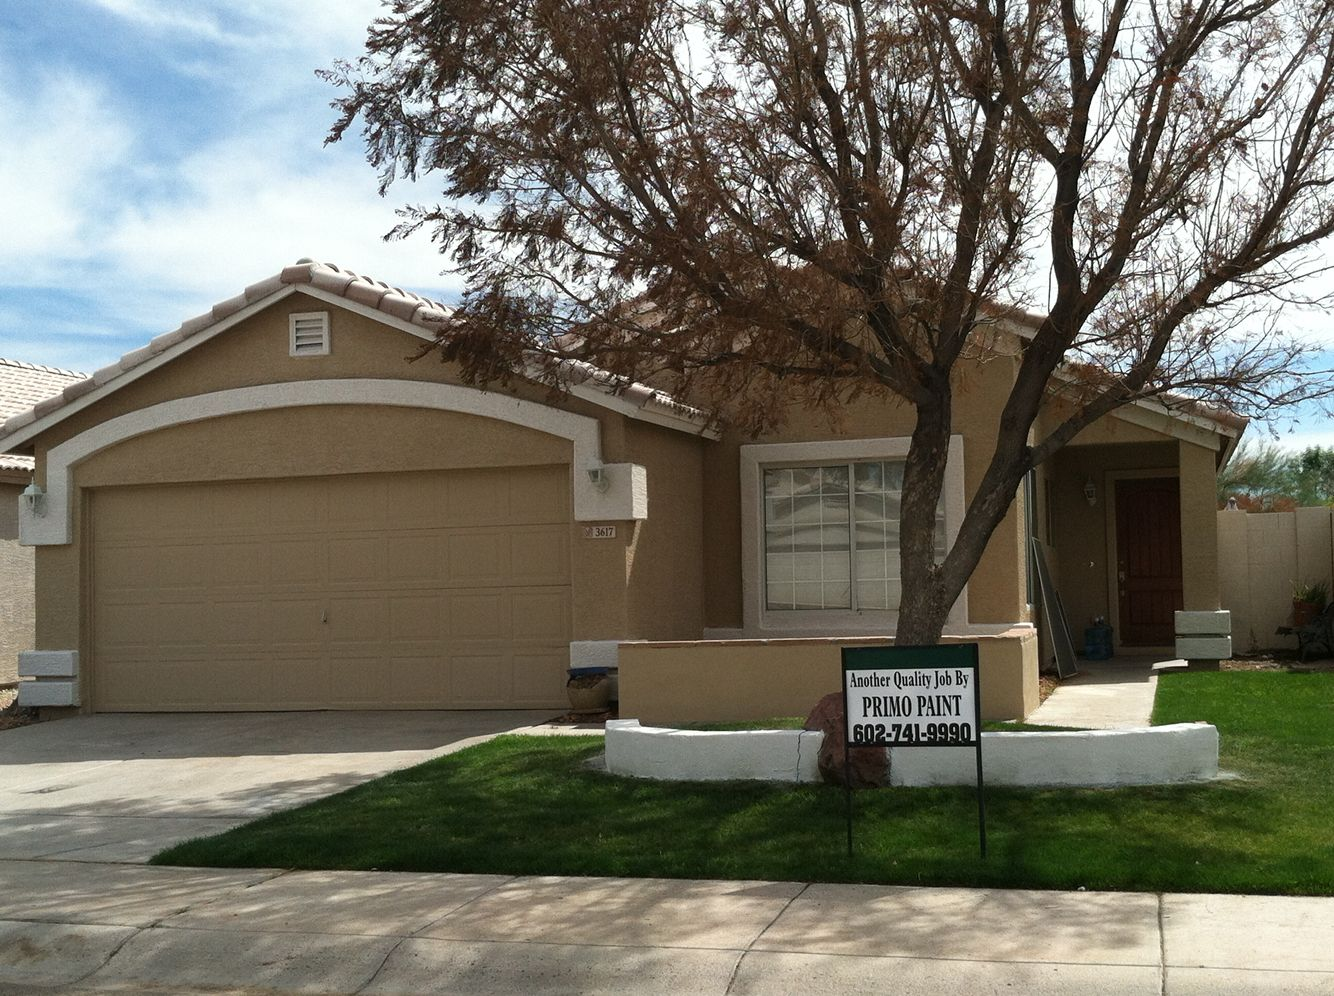 Exterior dunn edwards main color stonish beige - Dunn edwards paint colors exterior ...